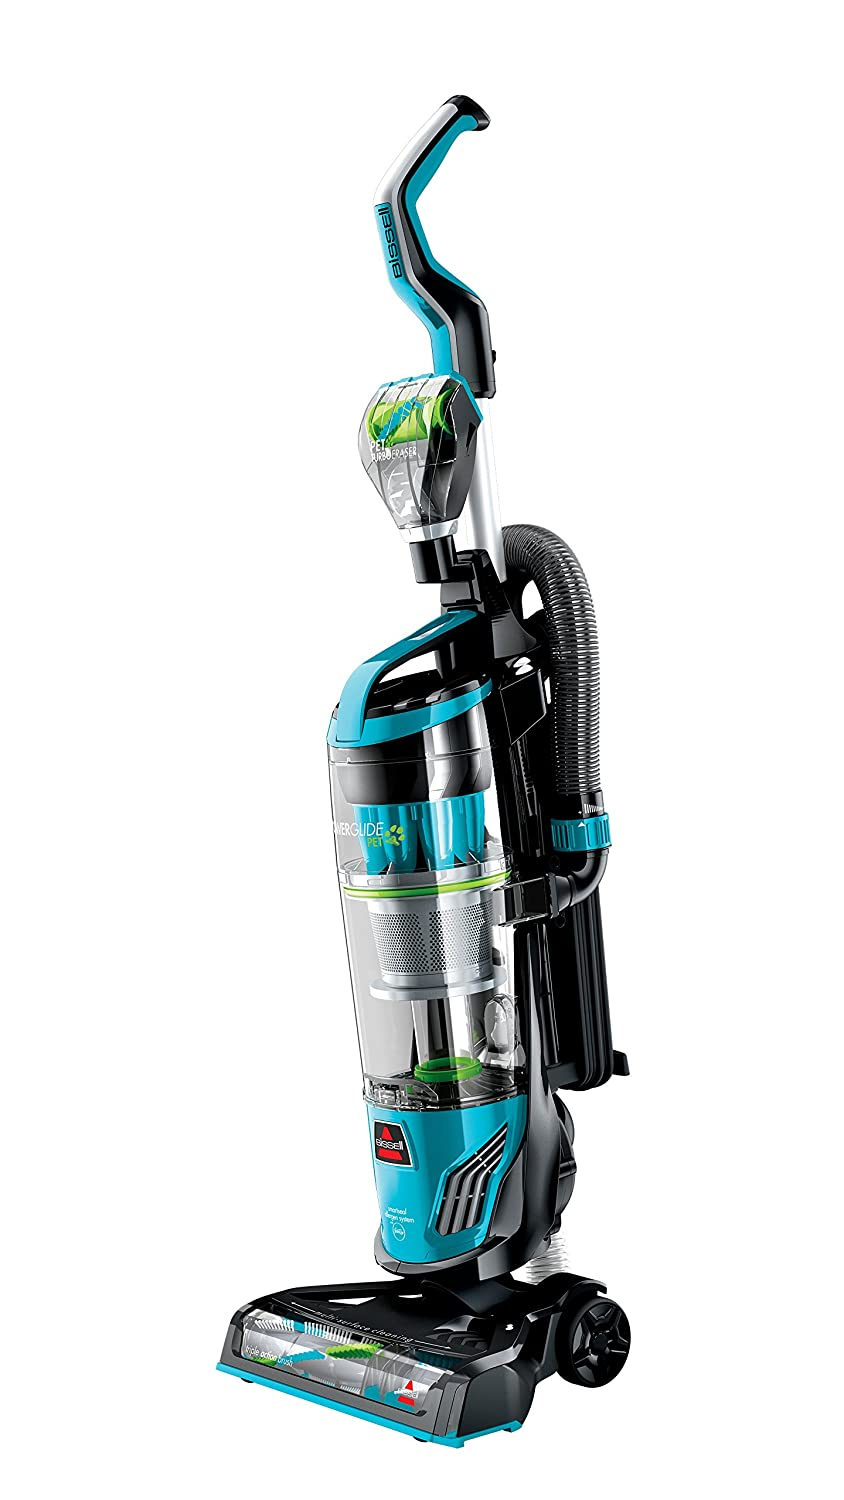 Bissell 2215C PowerGlide Pet Vacuum BISSELL Canada Corp